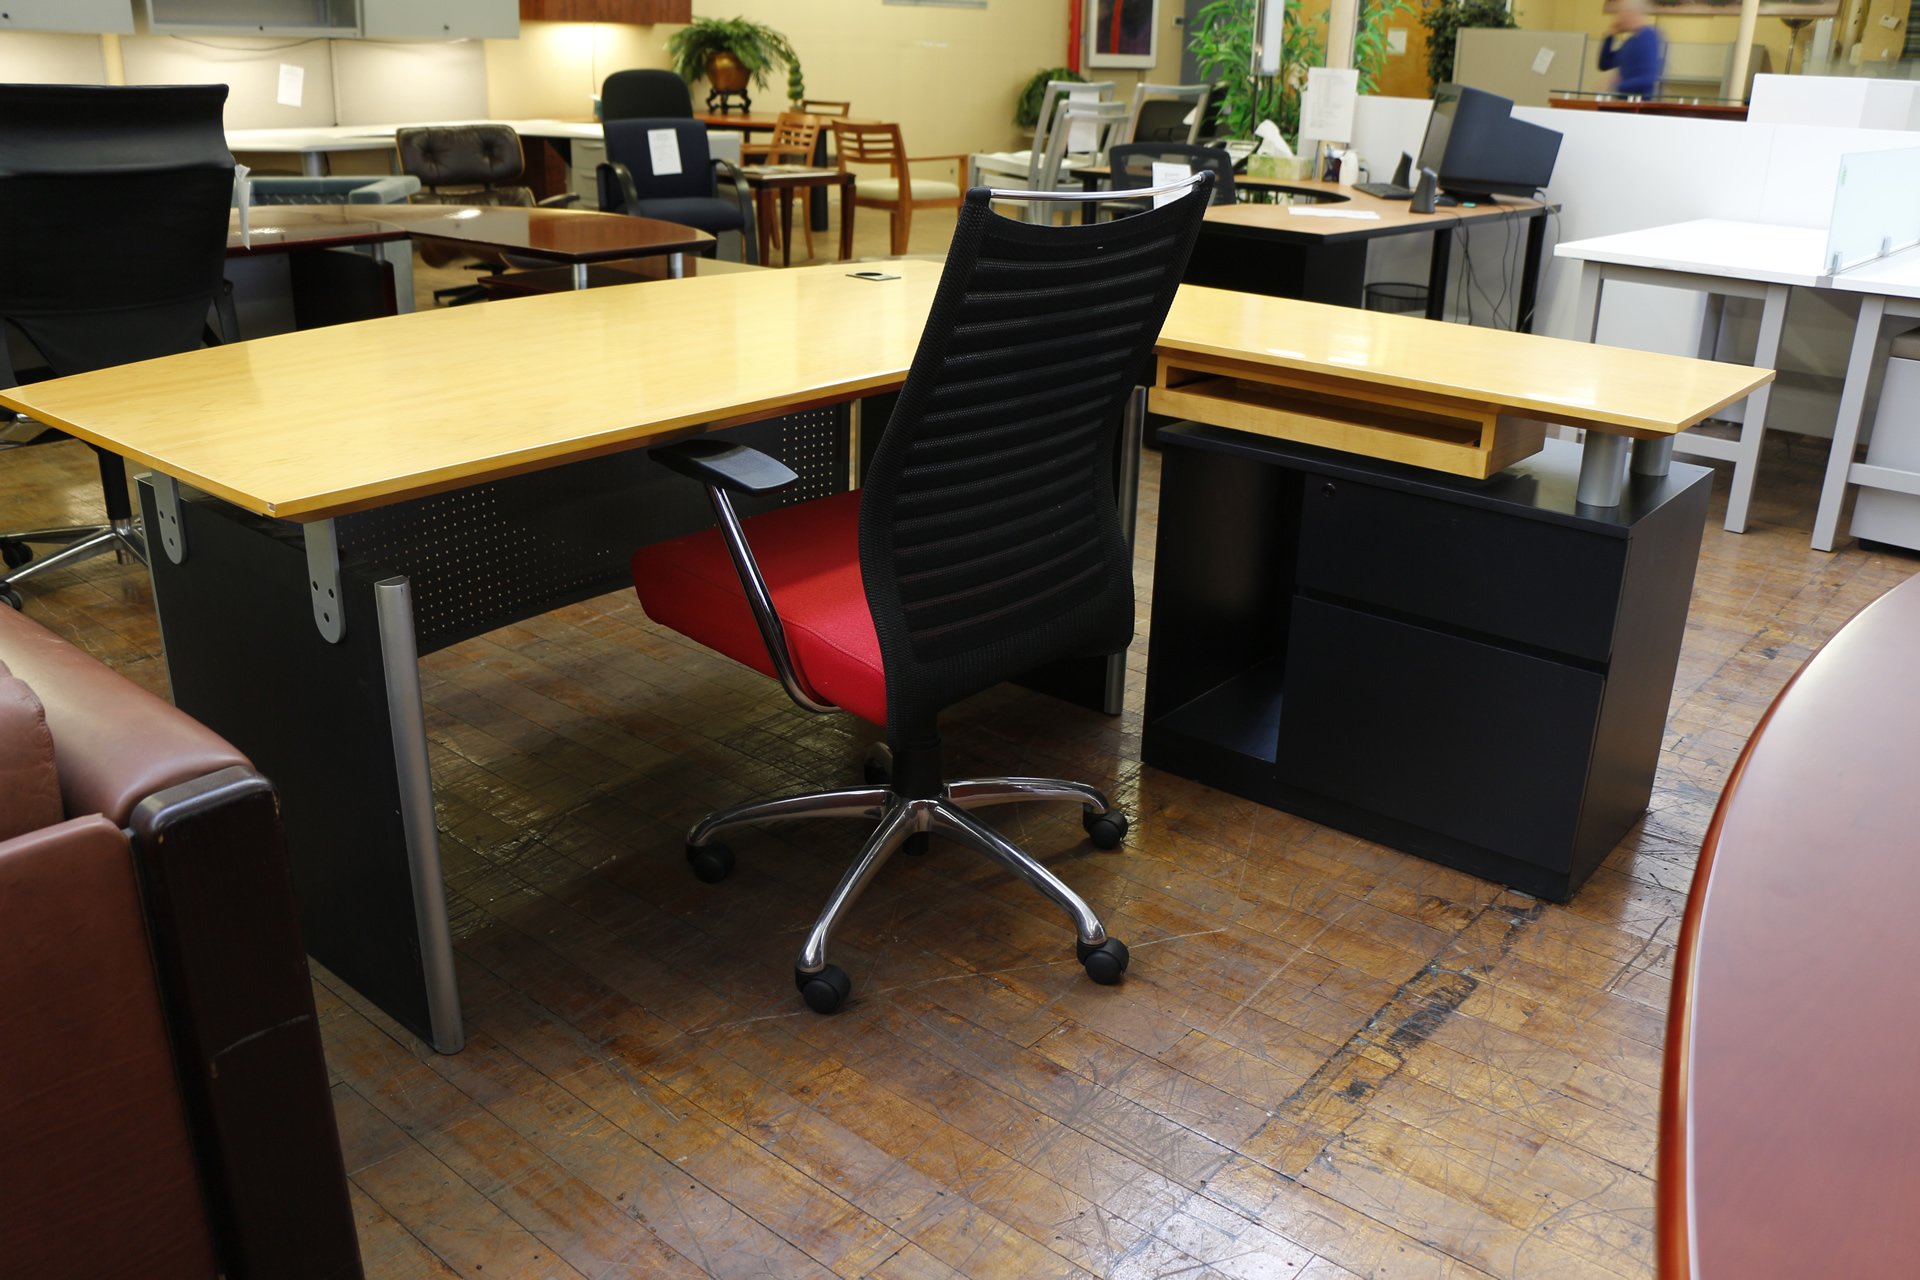 peartreeofficefurniture_peartreeofficefurniture_mg_4973.jpg